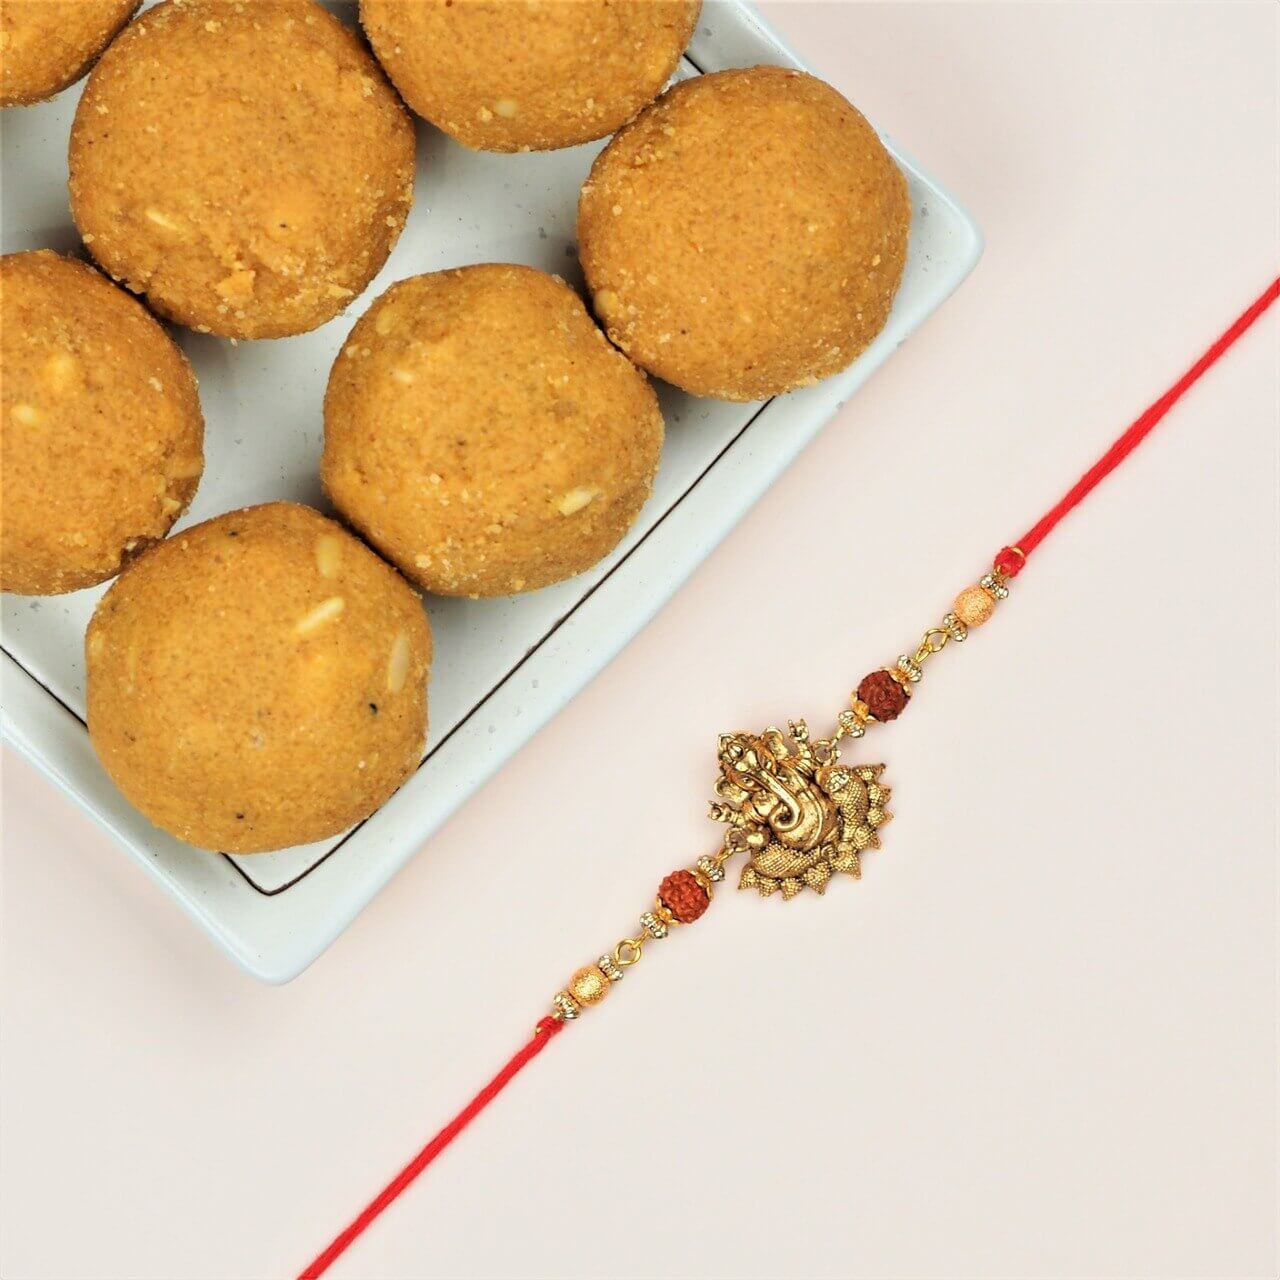 Divine Ganesha Rakhi with Besan Laddu - FOR NEW ZEALAND